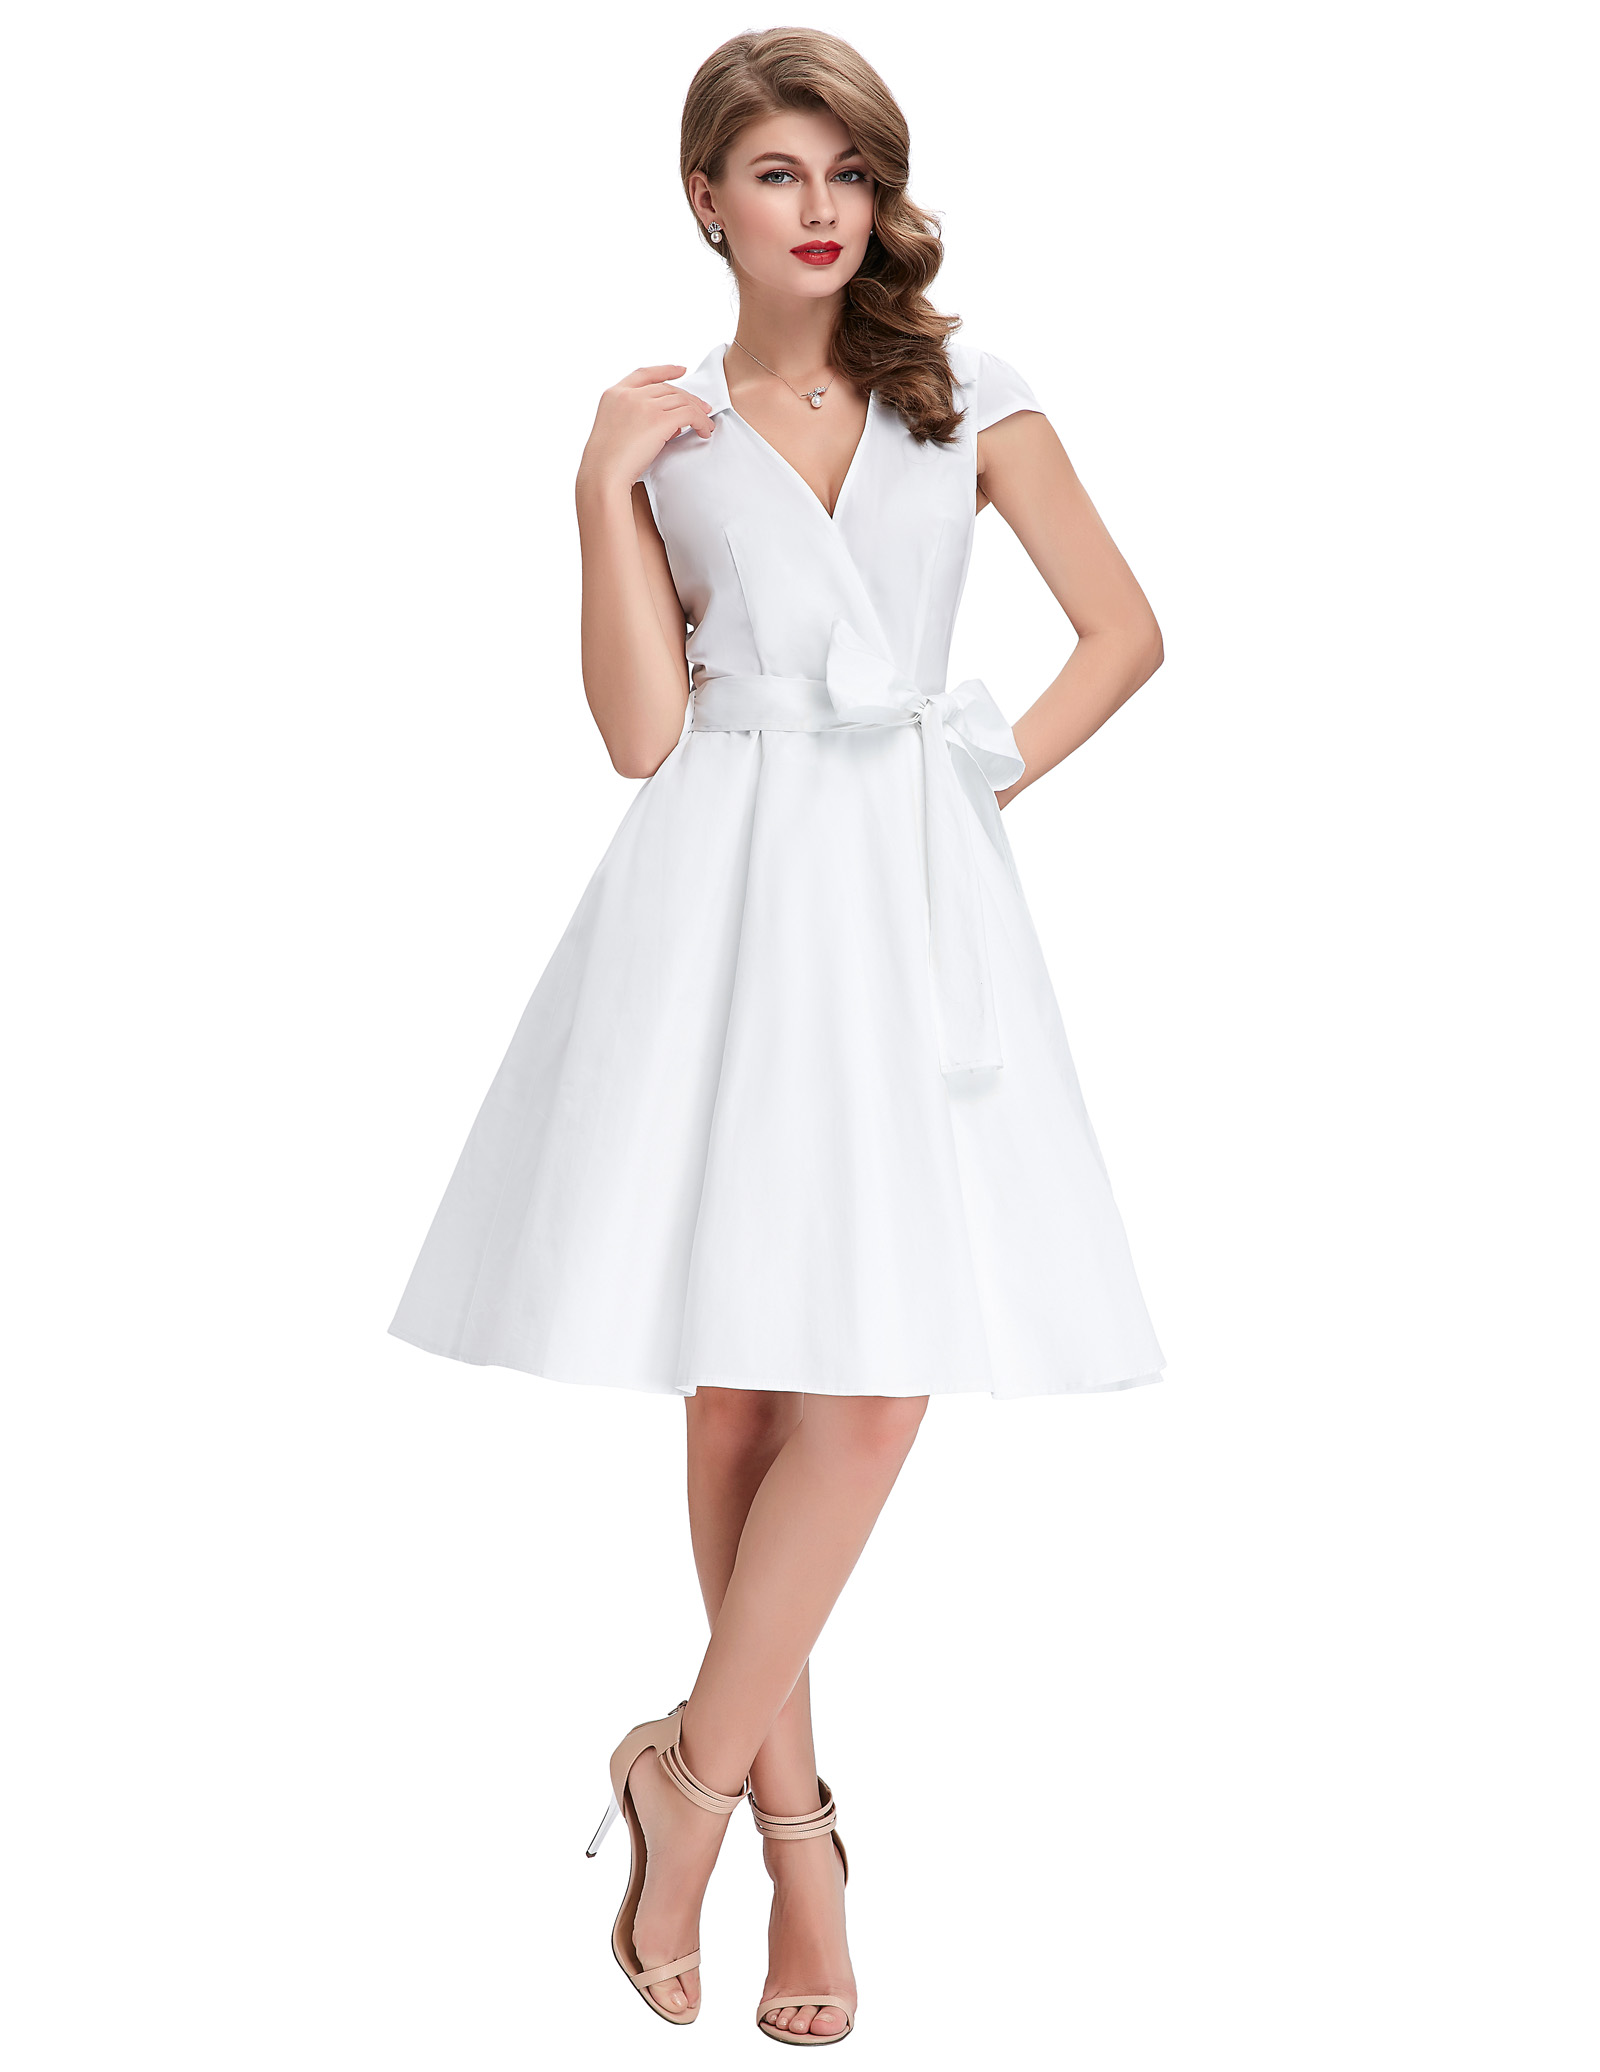 Retro 50s 60s Party Evening Cocktail Dress Housewife Swing Pinup ...